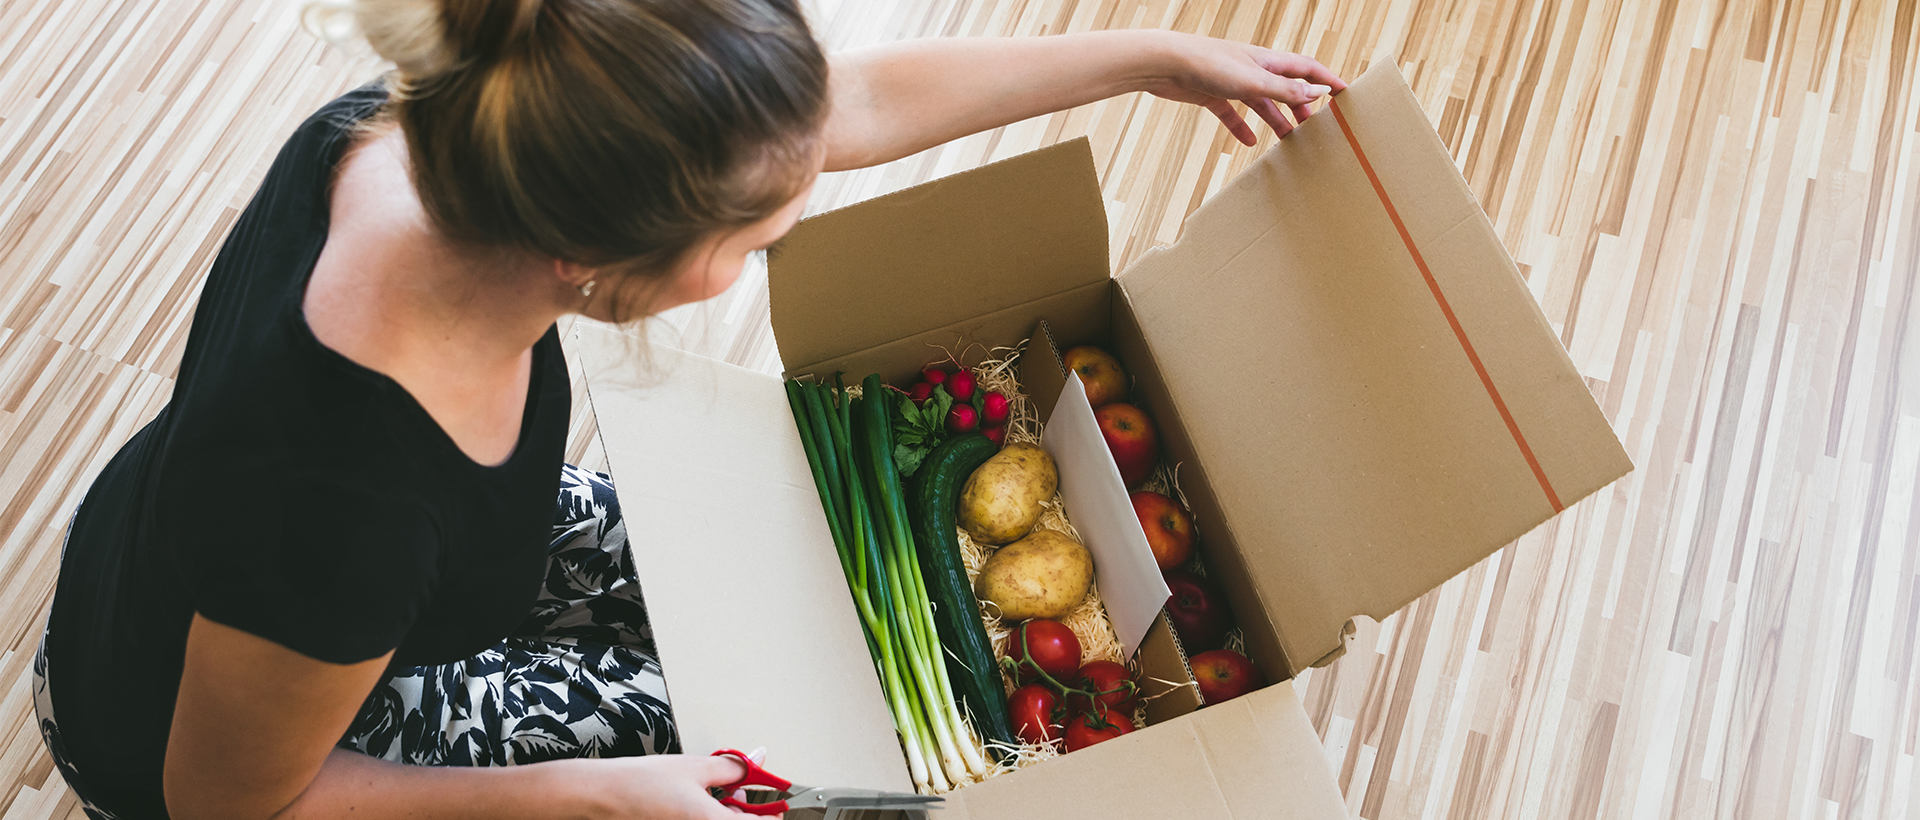 A woman unboxing her grocery delivery.